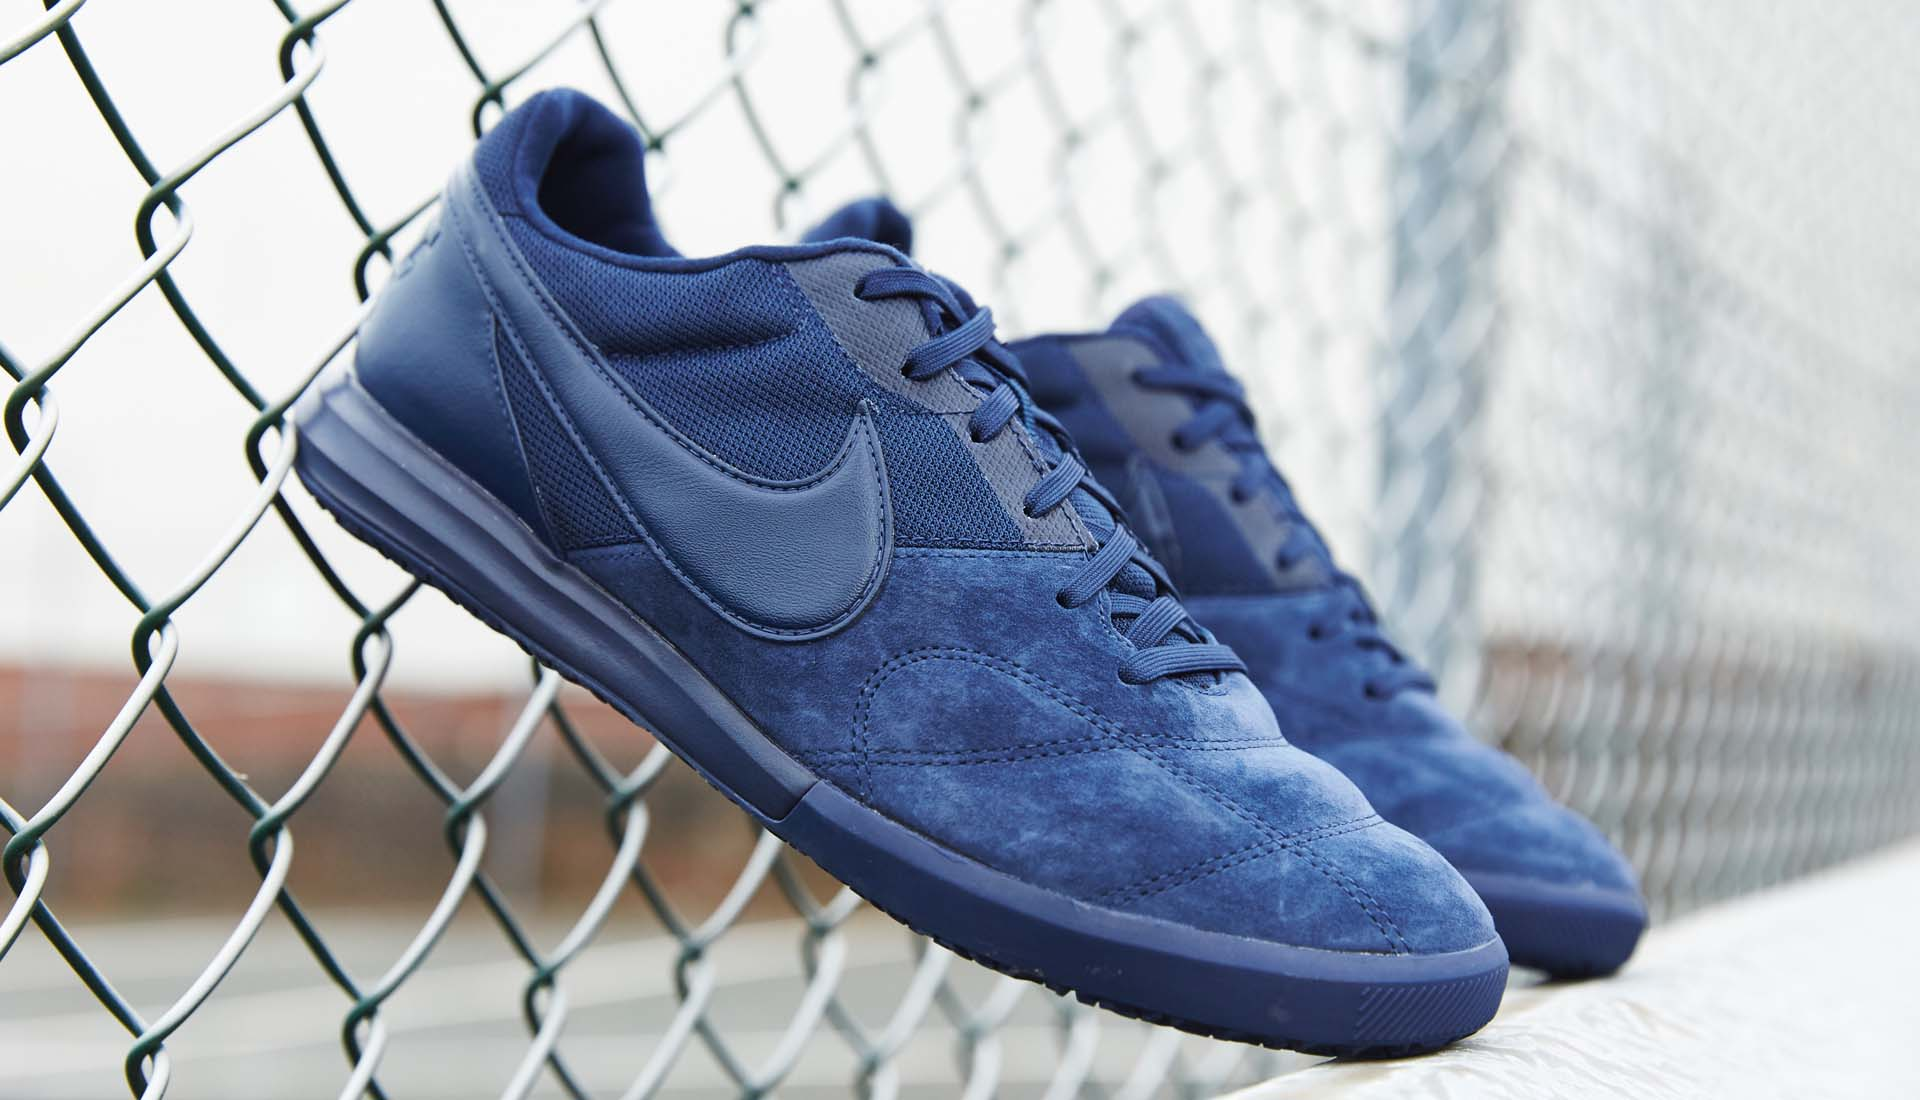 d3855f60ecbe3 Nike Launch The Premier II Sala Collection - SoccerBible